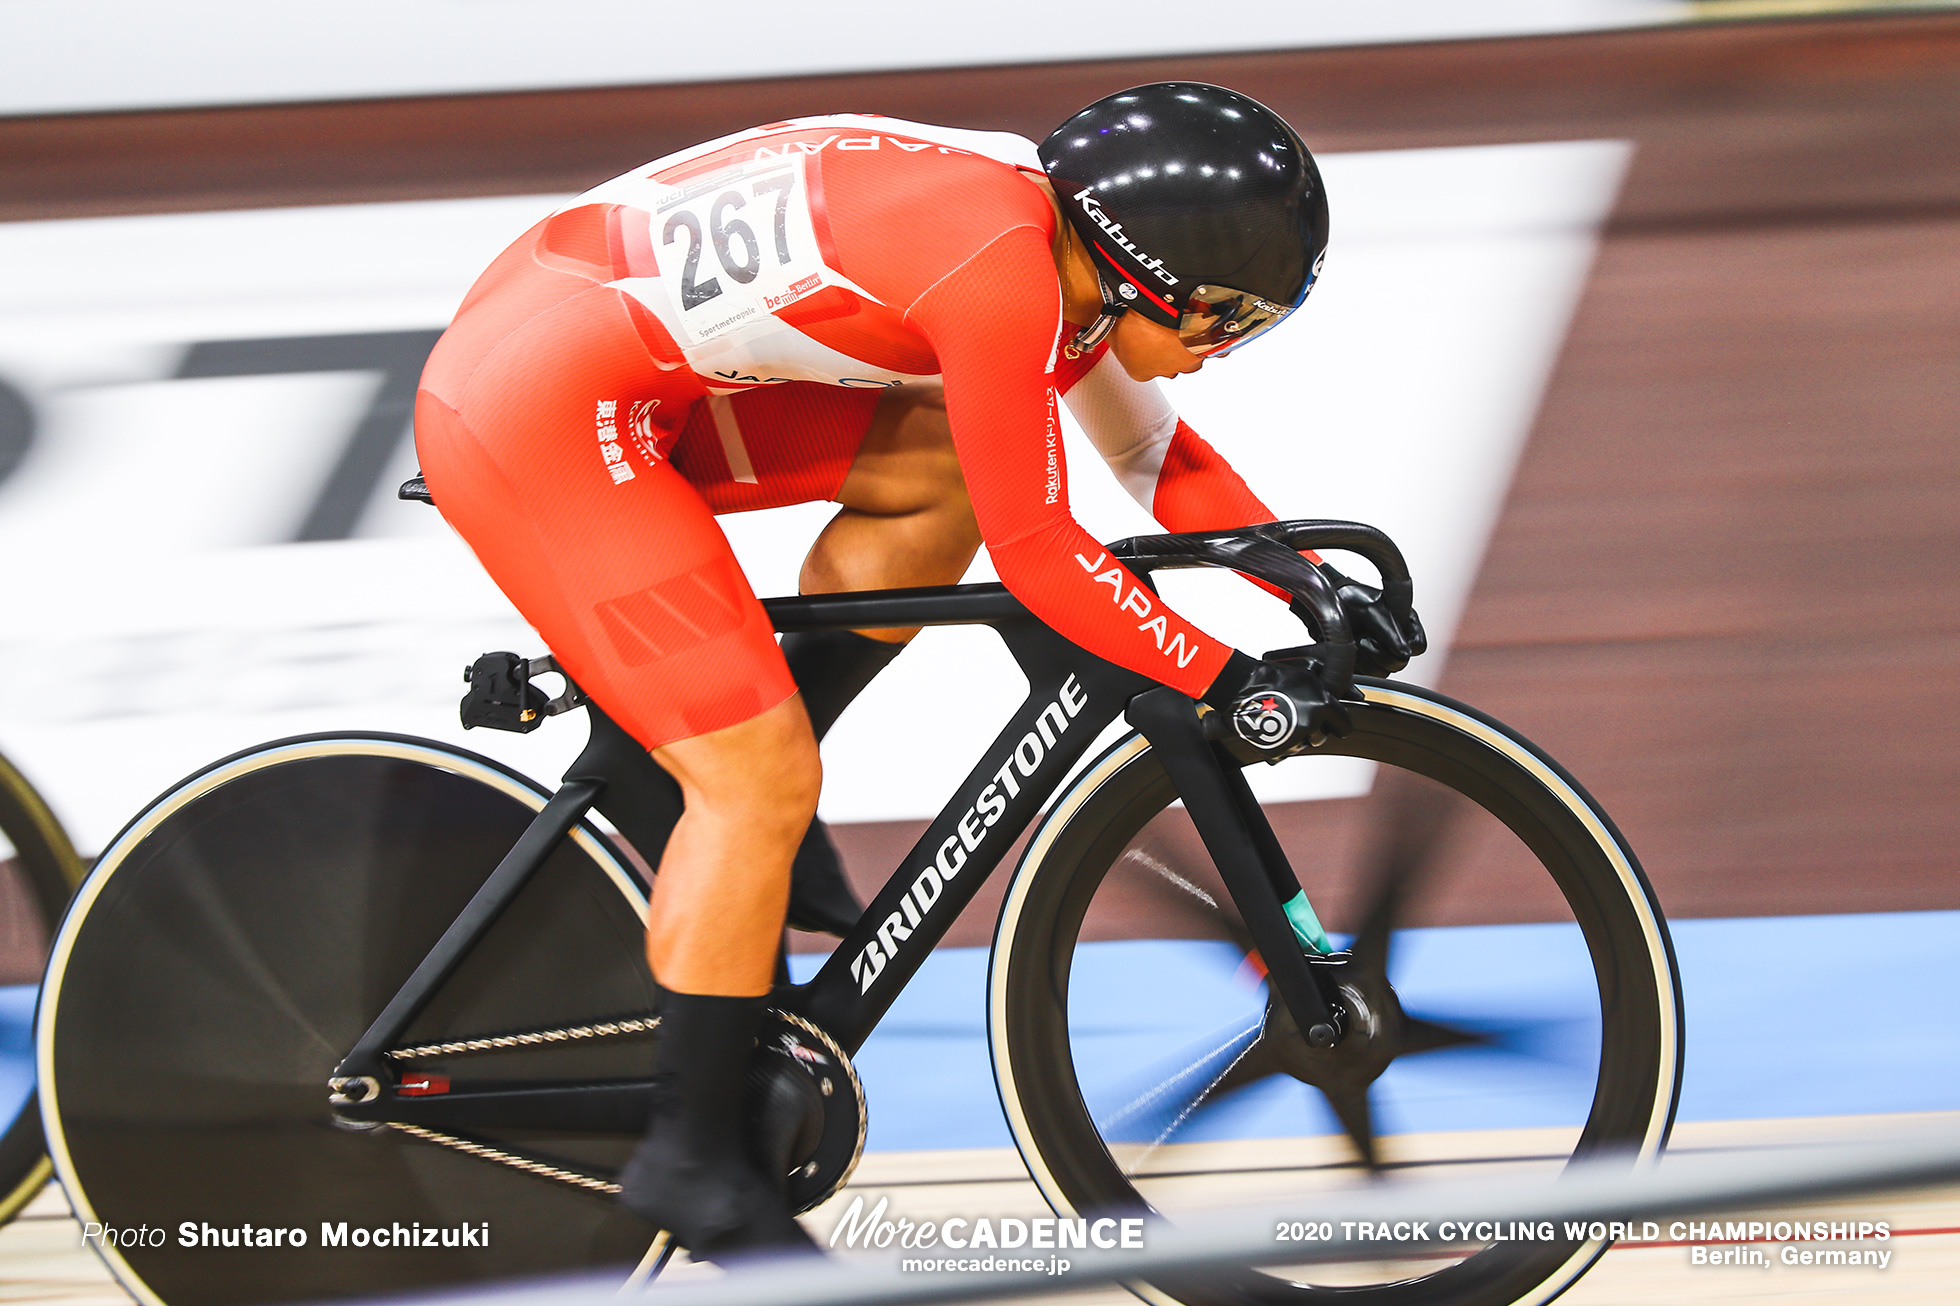 1st Round Repechage / Women's Keirin / 2020 Track Cycling World Championships